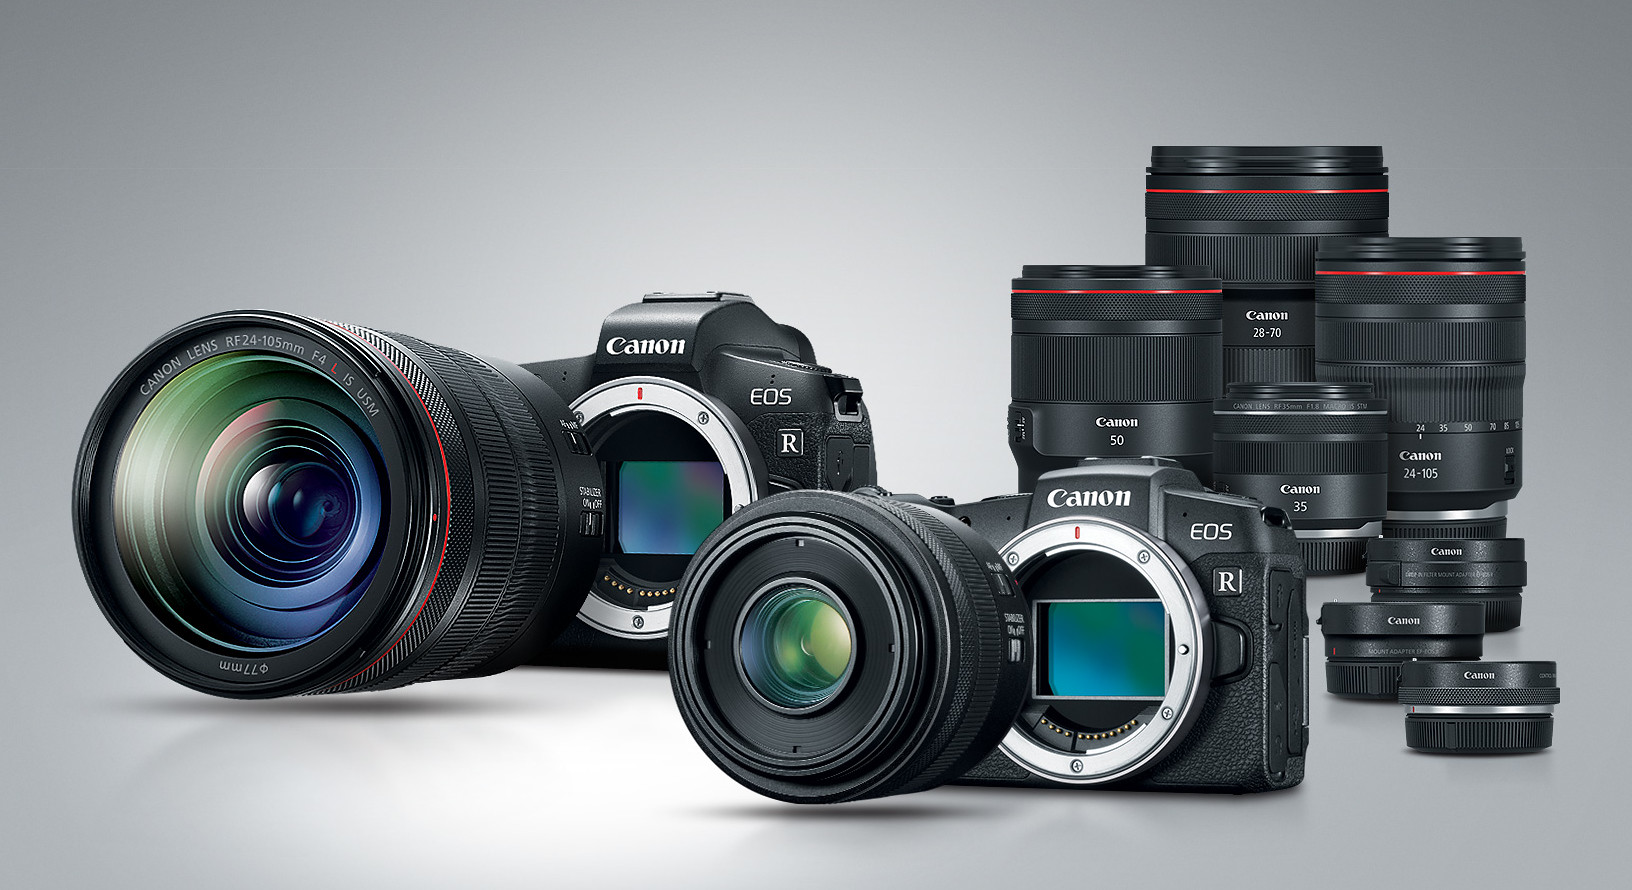 lineup of Canon RF lenses and R MILC bodies as of 2019 October - Source- Canon